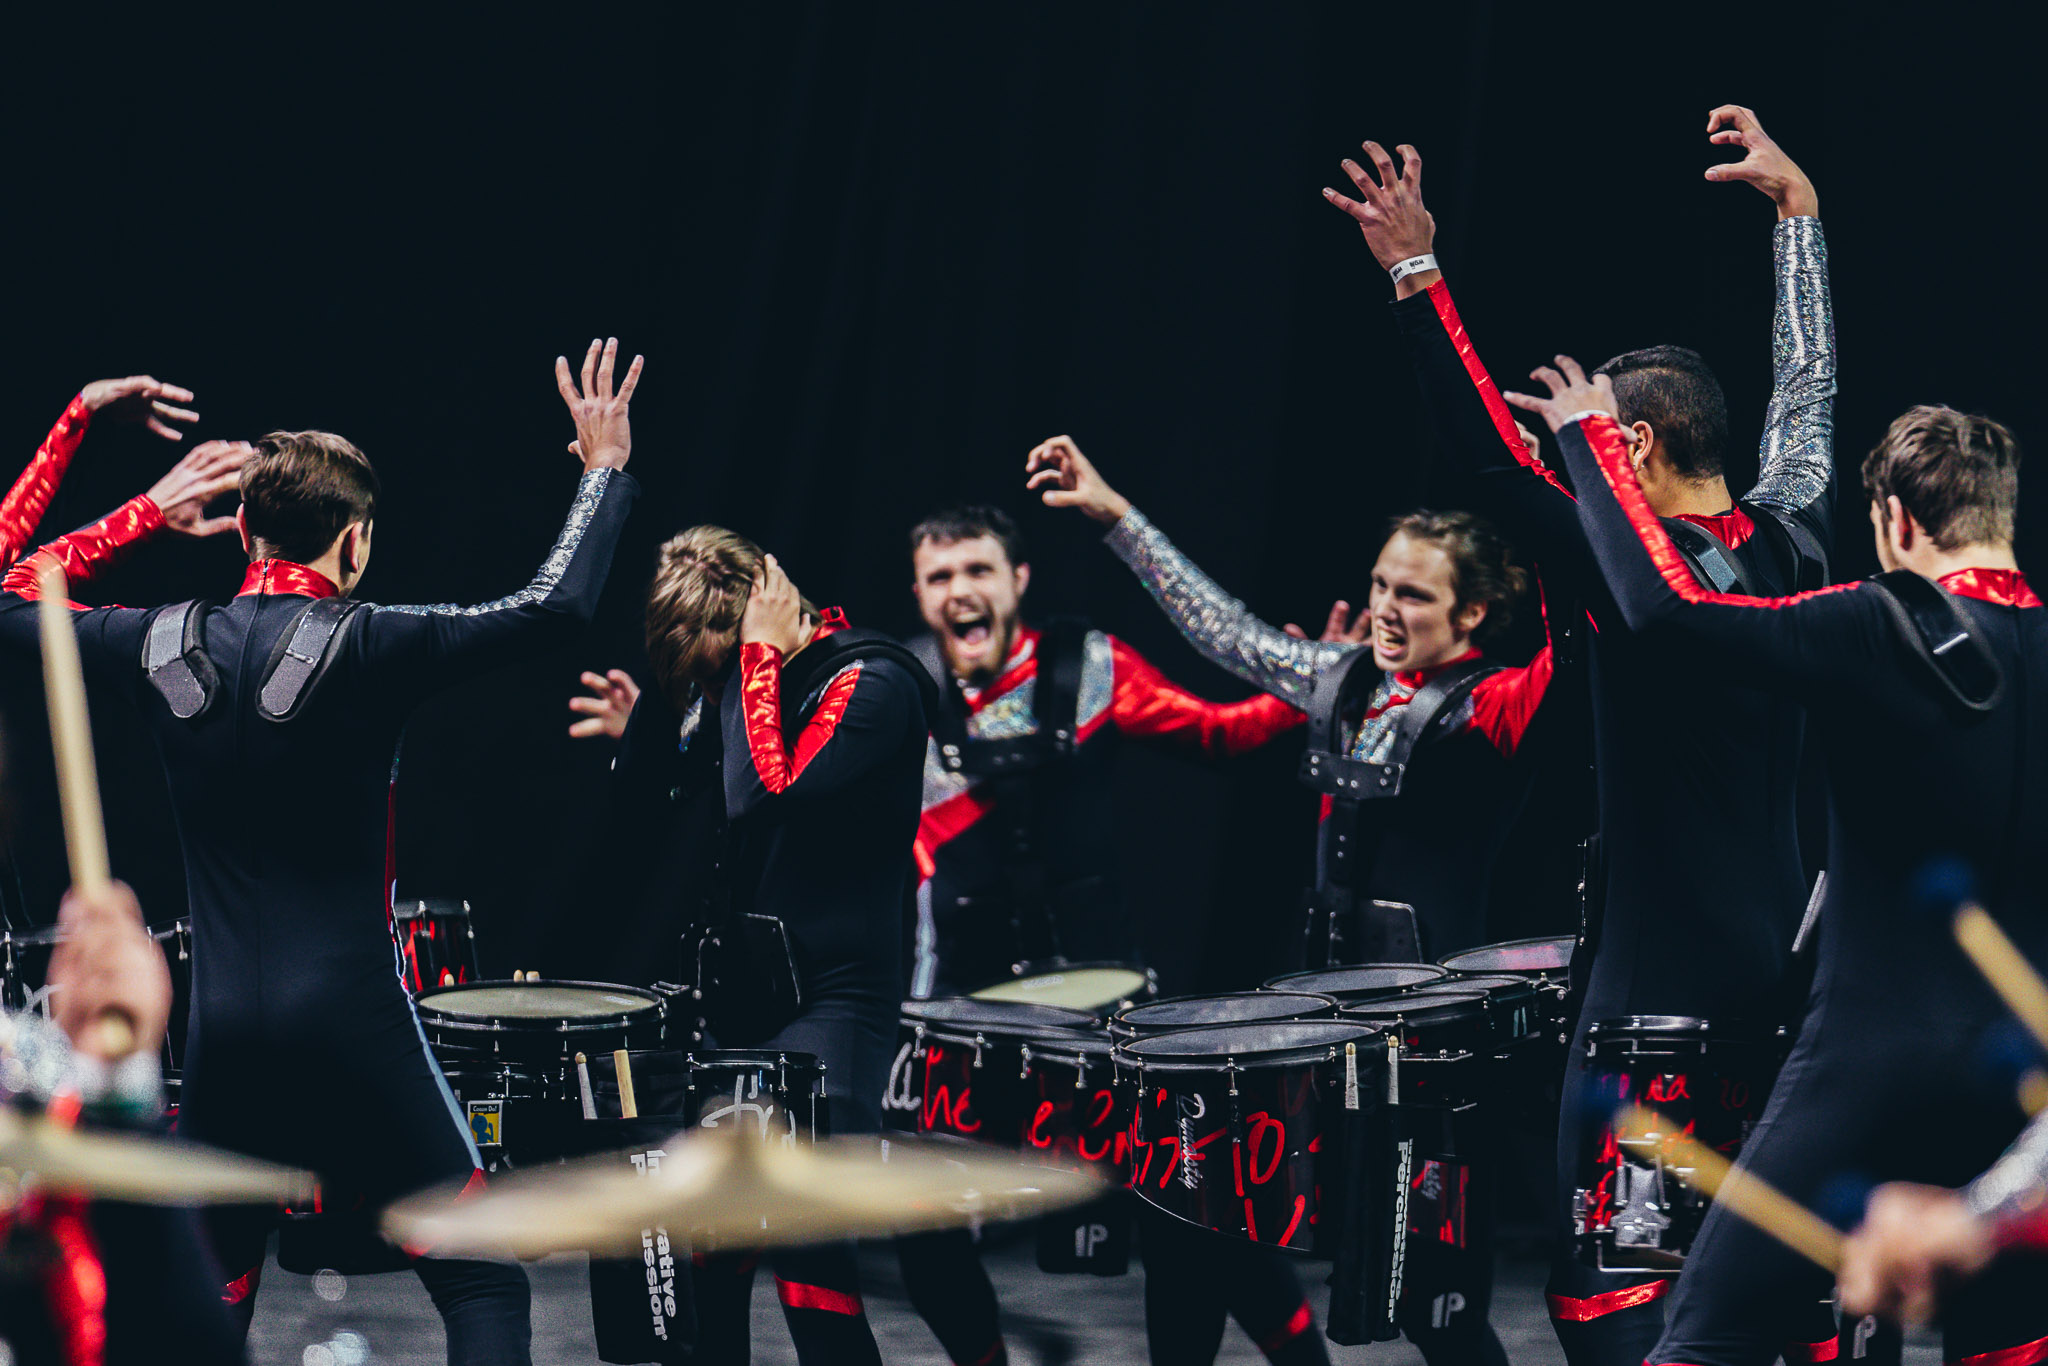 Members of the drumline perform at the 2018 WGI MidEast Power Regional on March 24 & 25. INov8 scored a 90.80 in Finals, capturing the regional for the first time.